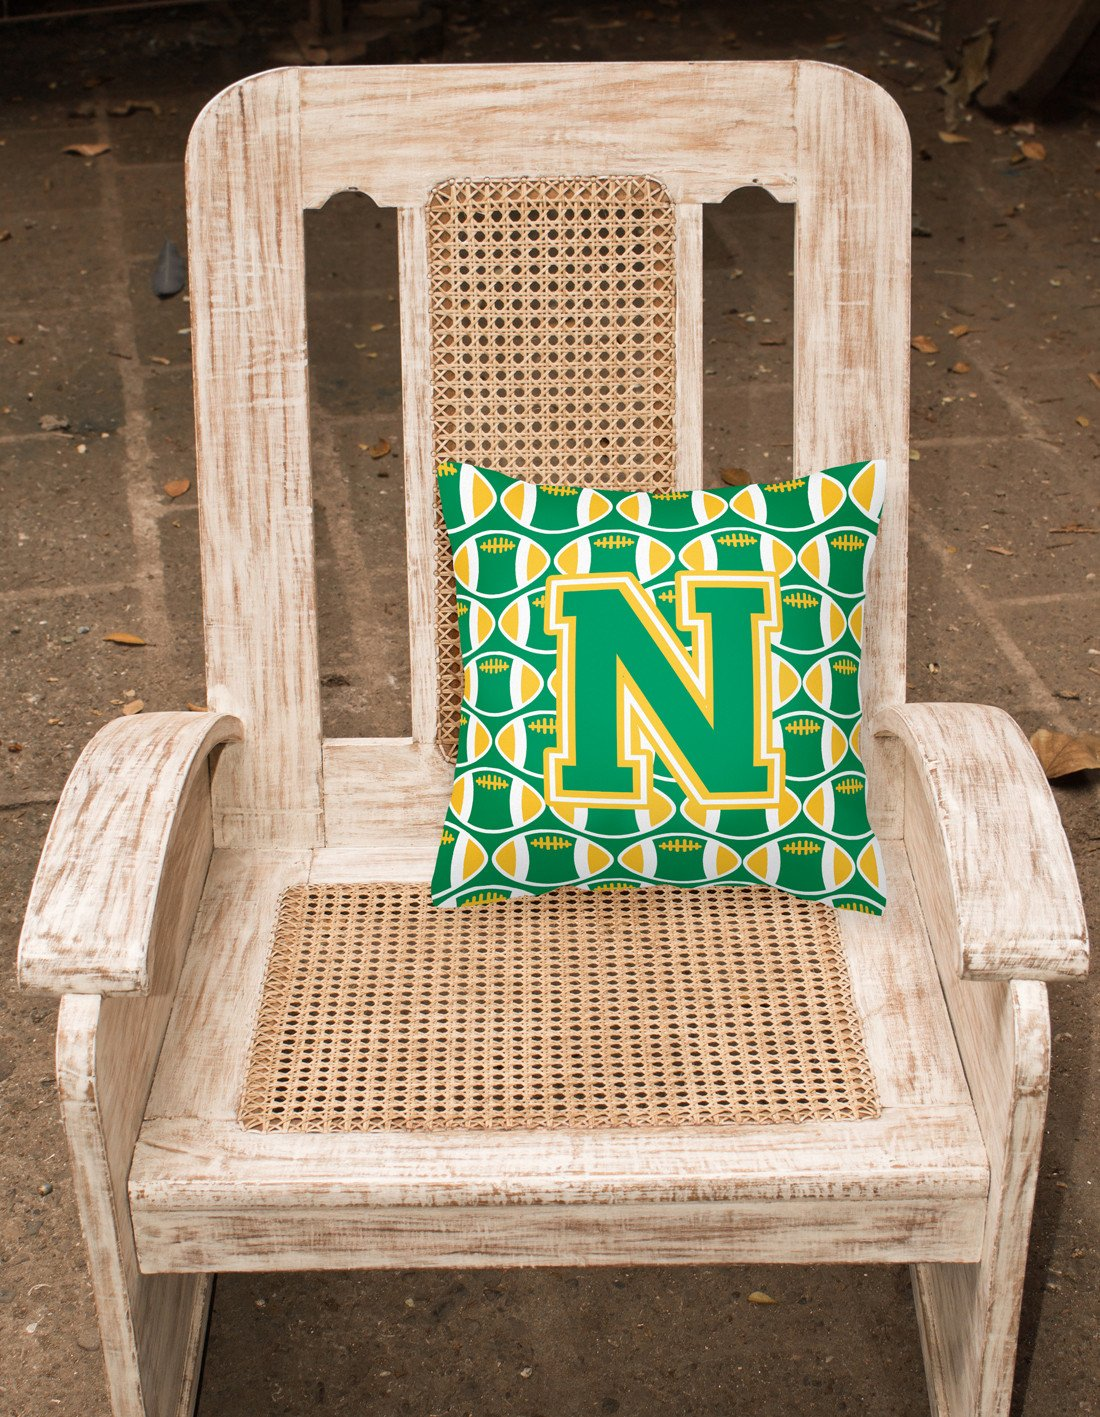 Letter N Football Green and Gold Fabric Decorative Pillow CJ1069-NPW1414 by Caroline's Treasures